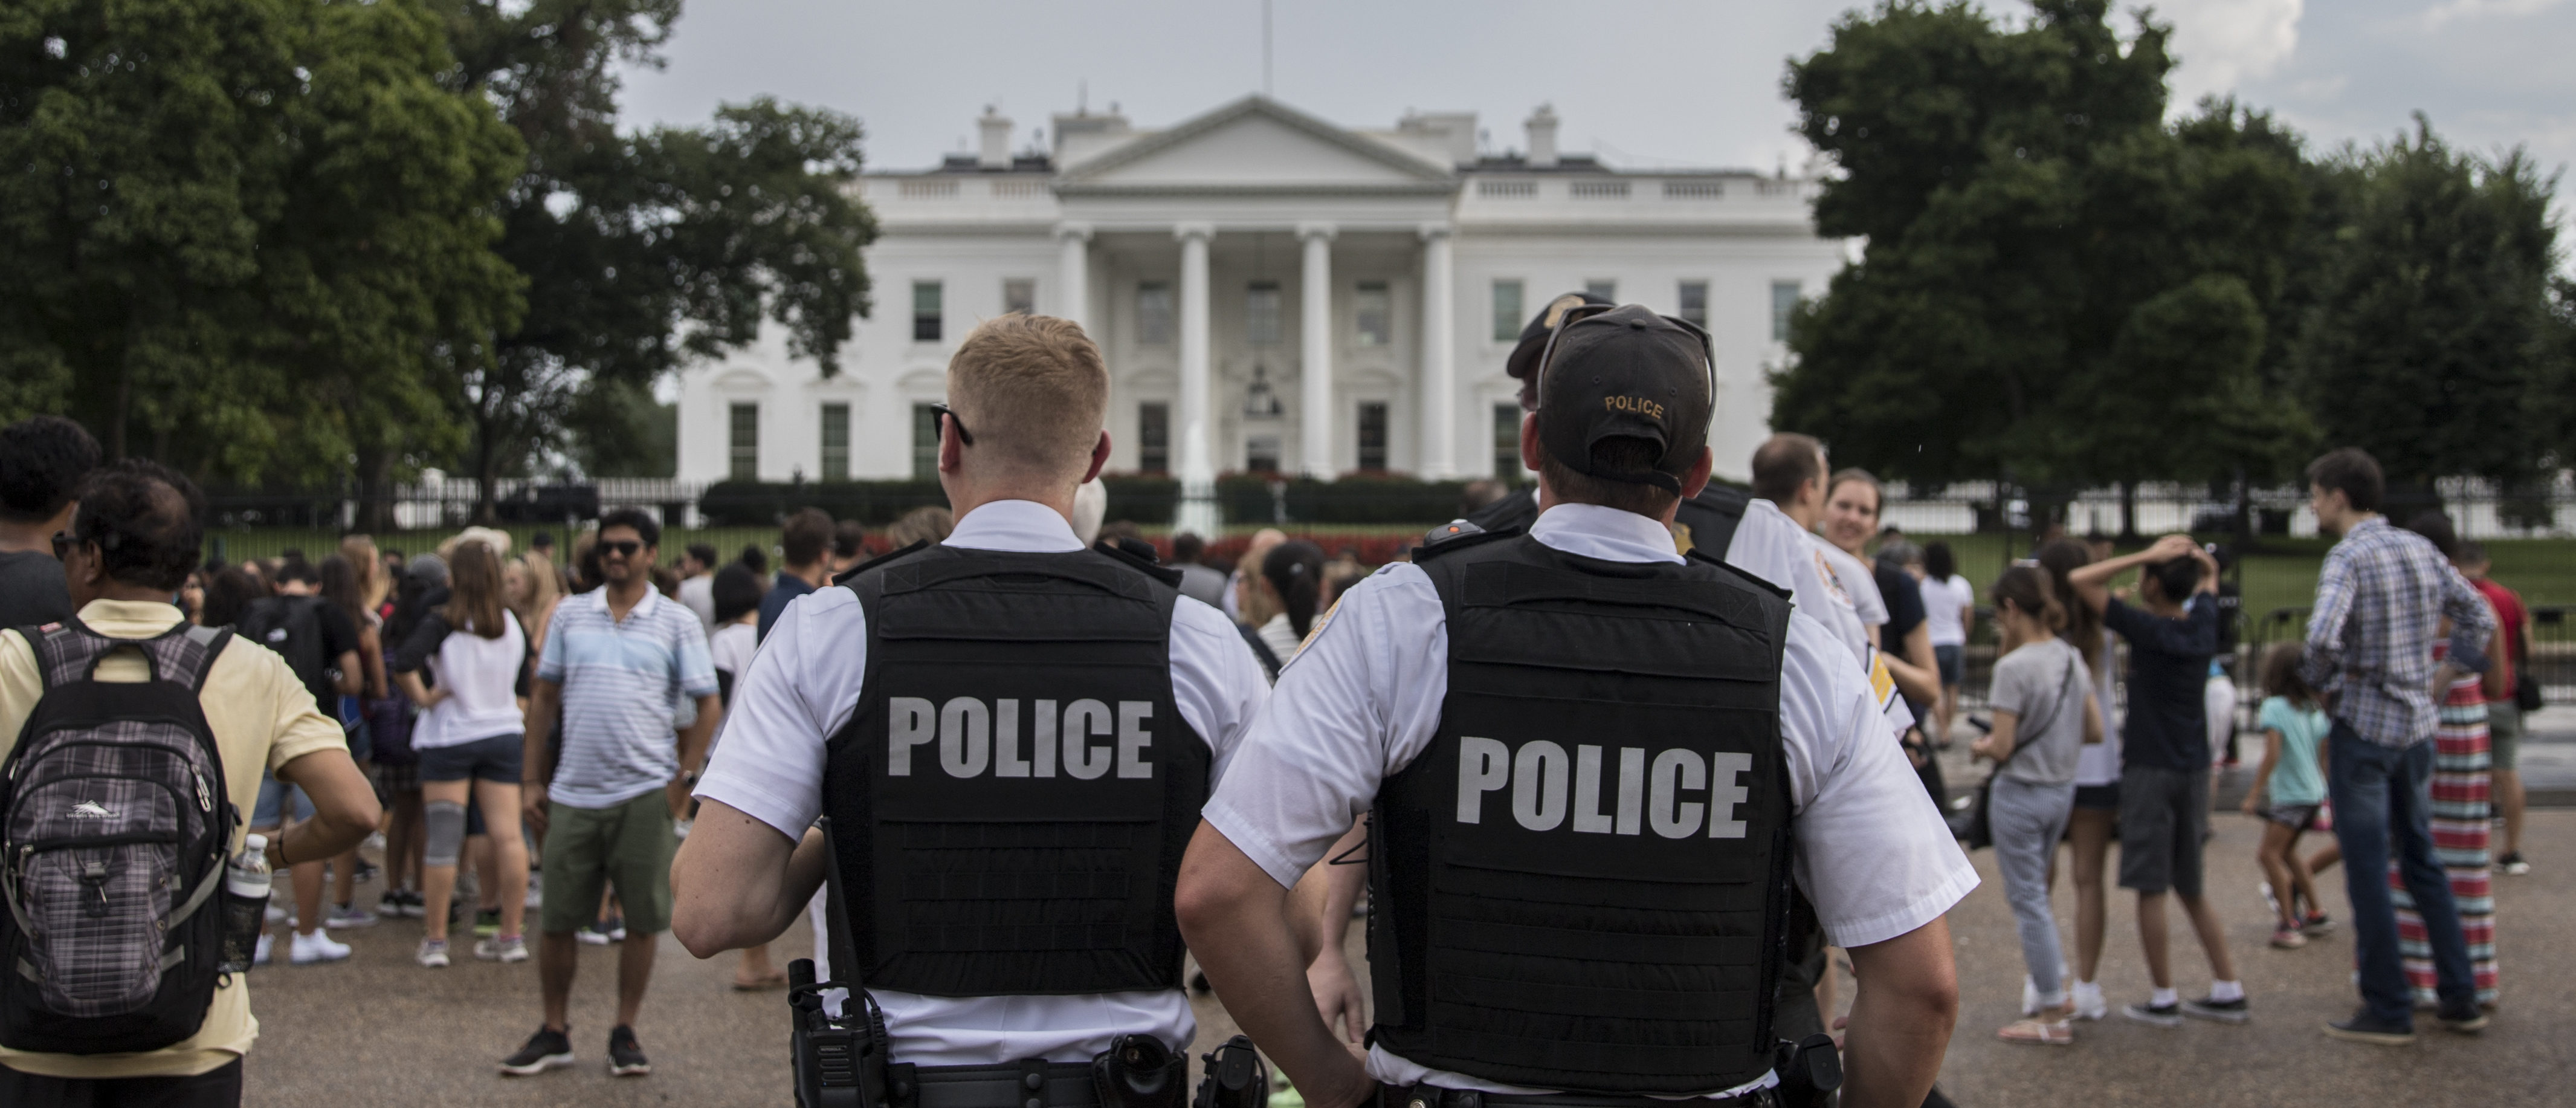 WASHINGTON, DC - AUGUST 11: Police patrol outside the White House on August 11, 2018 in Washington, DC. A 'Unite the Right' rally featuring white supremacist forces and counter protesters is planned for tomorrow in Washington, DC. (Photo by Alex Wroblewski/Getty Images)